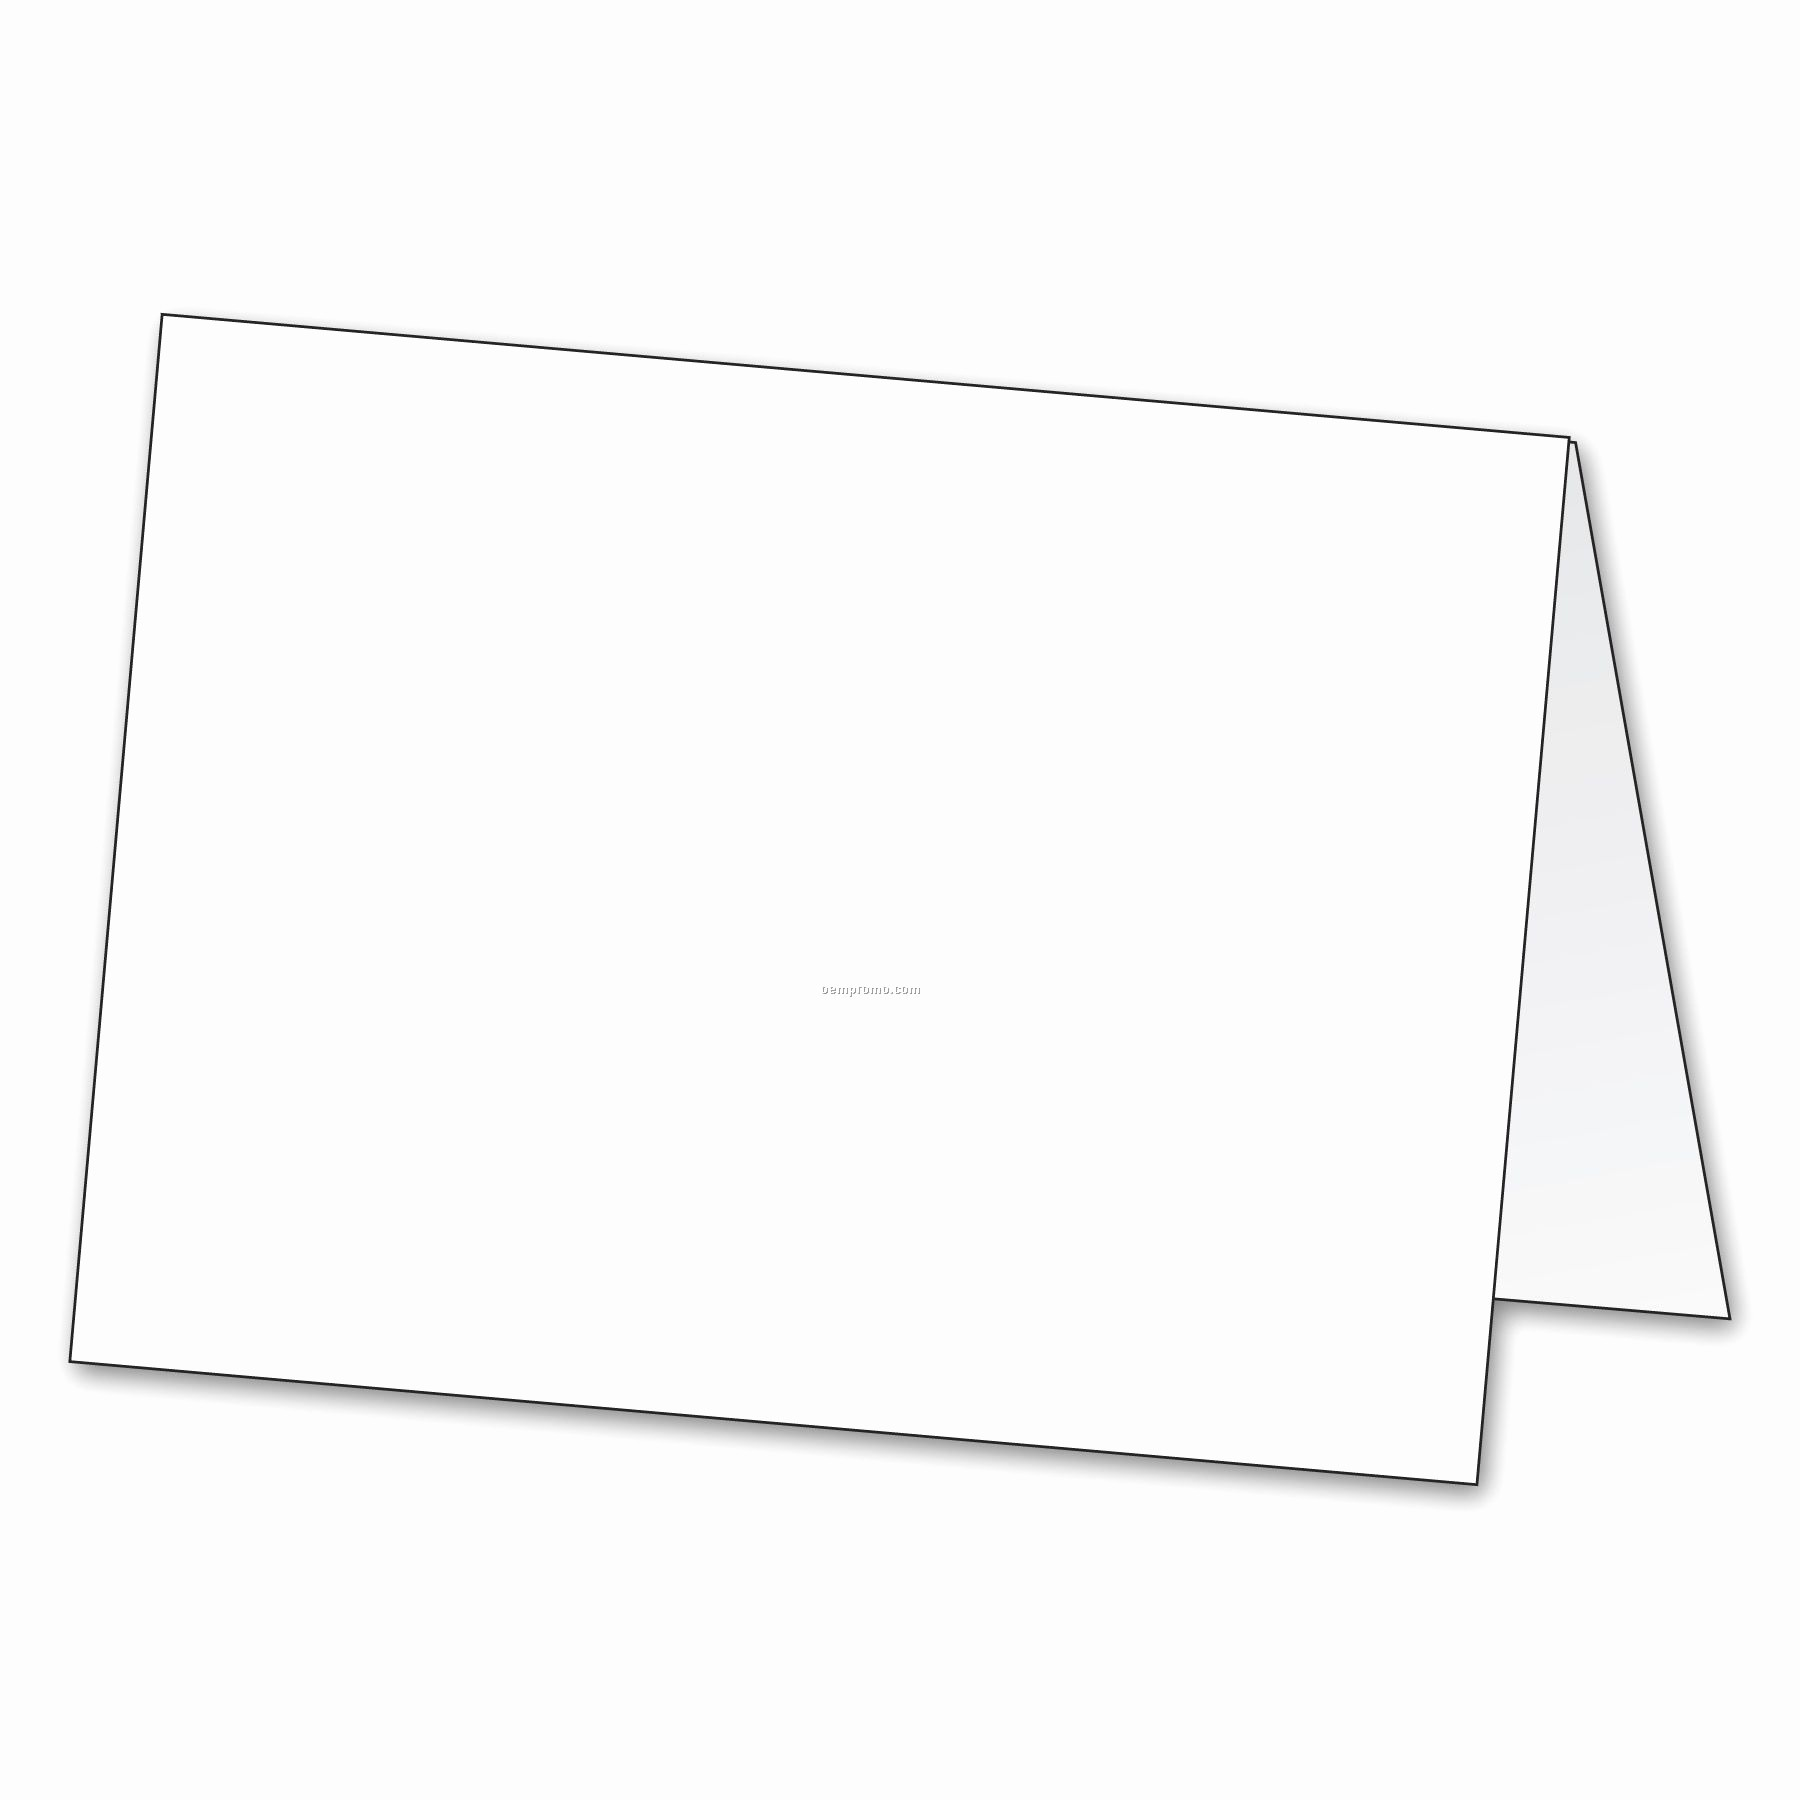 Blank Place Card Template Word Unique Name Tent Template to Pin On Pinterest Pinsdaddy